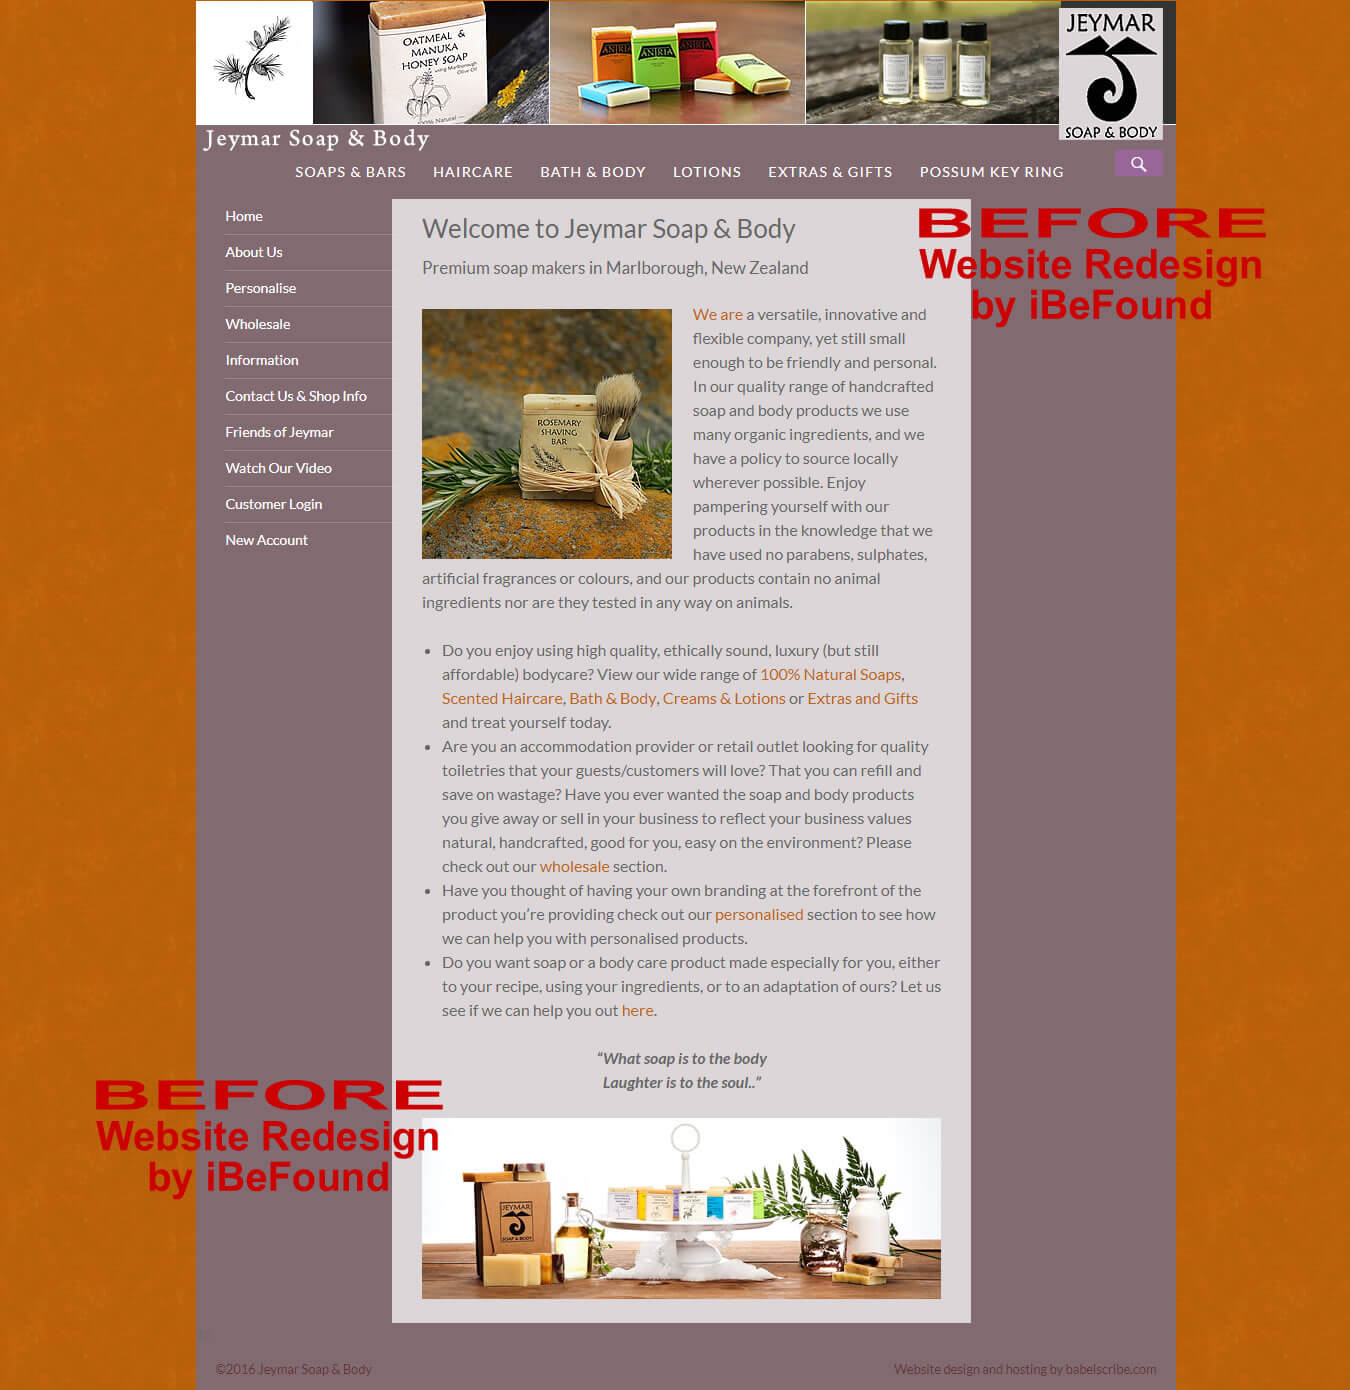 Homepage Of Jeymar Soap And Body Before Website Redesign By IBeFound